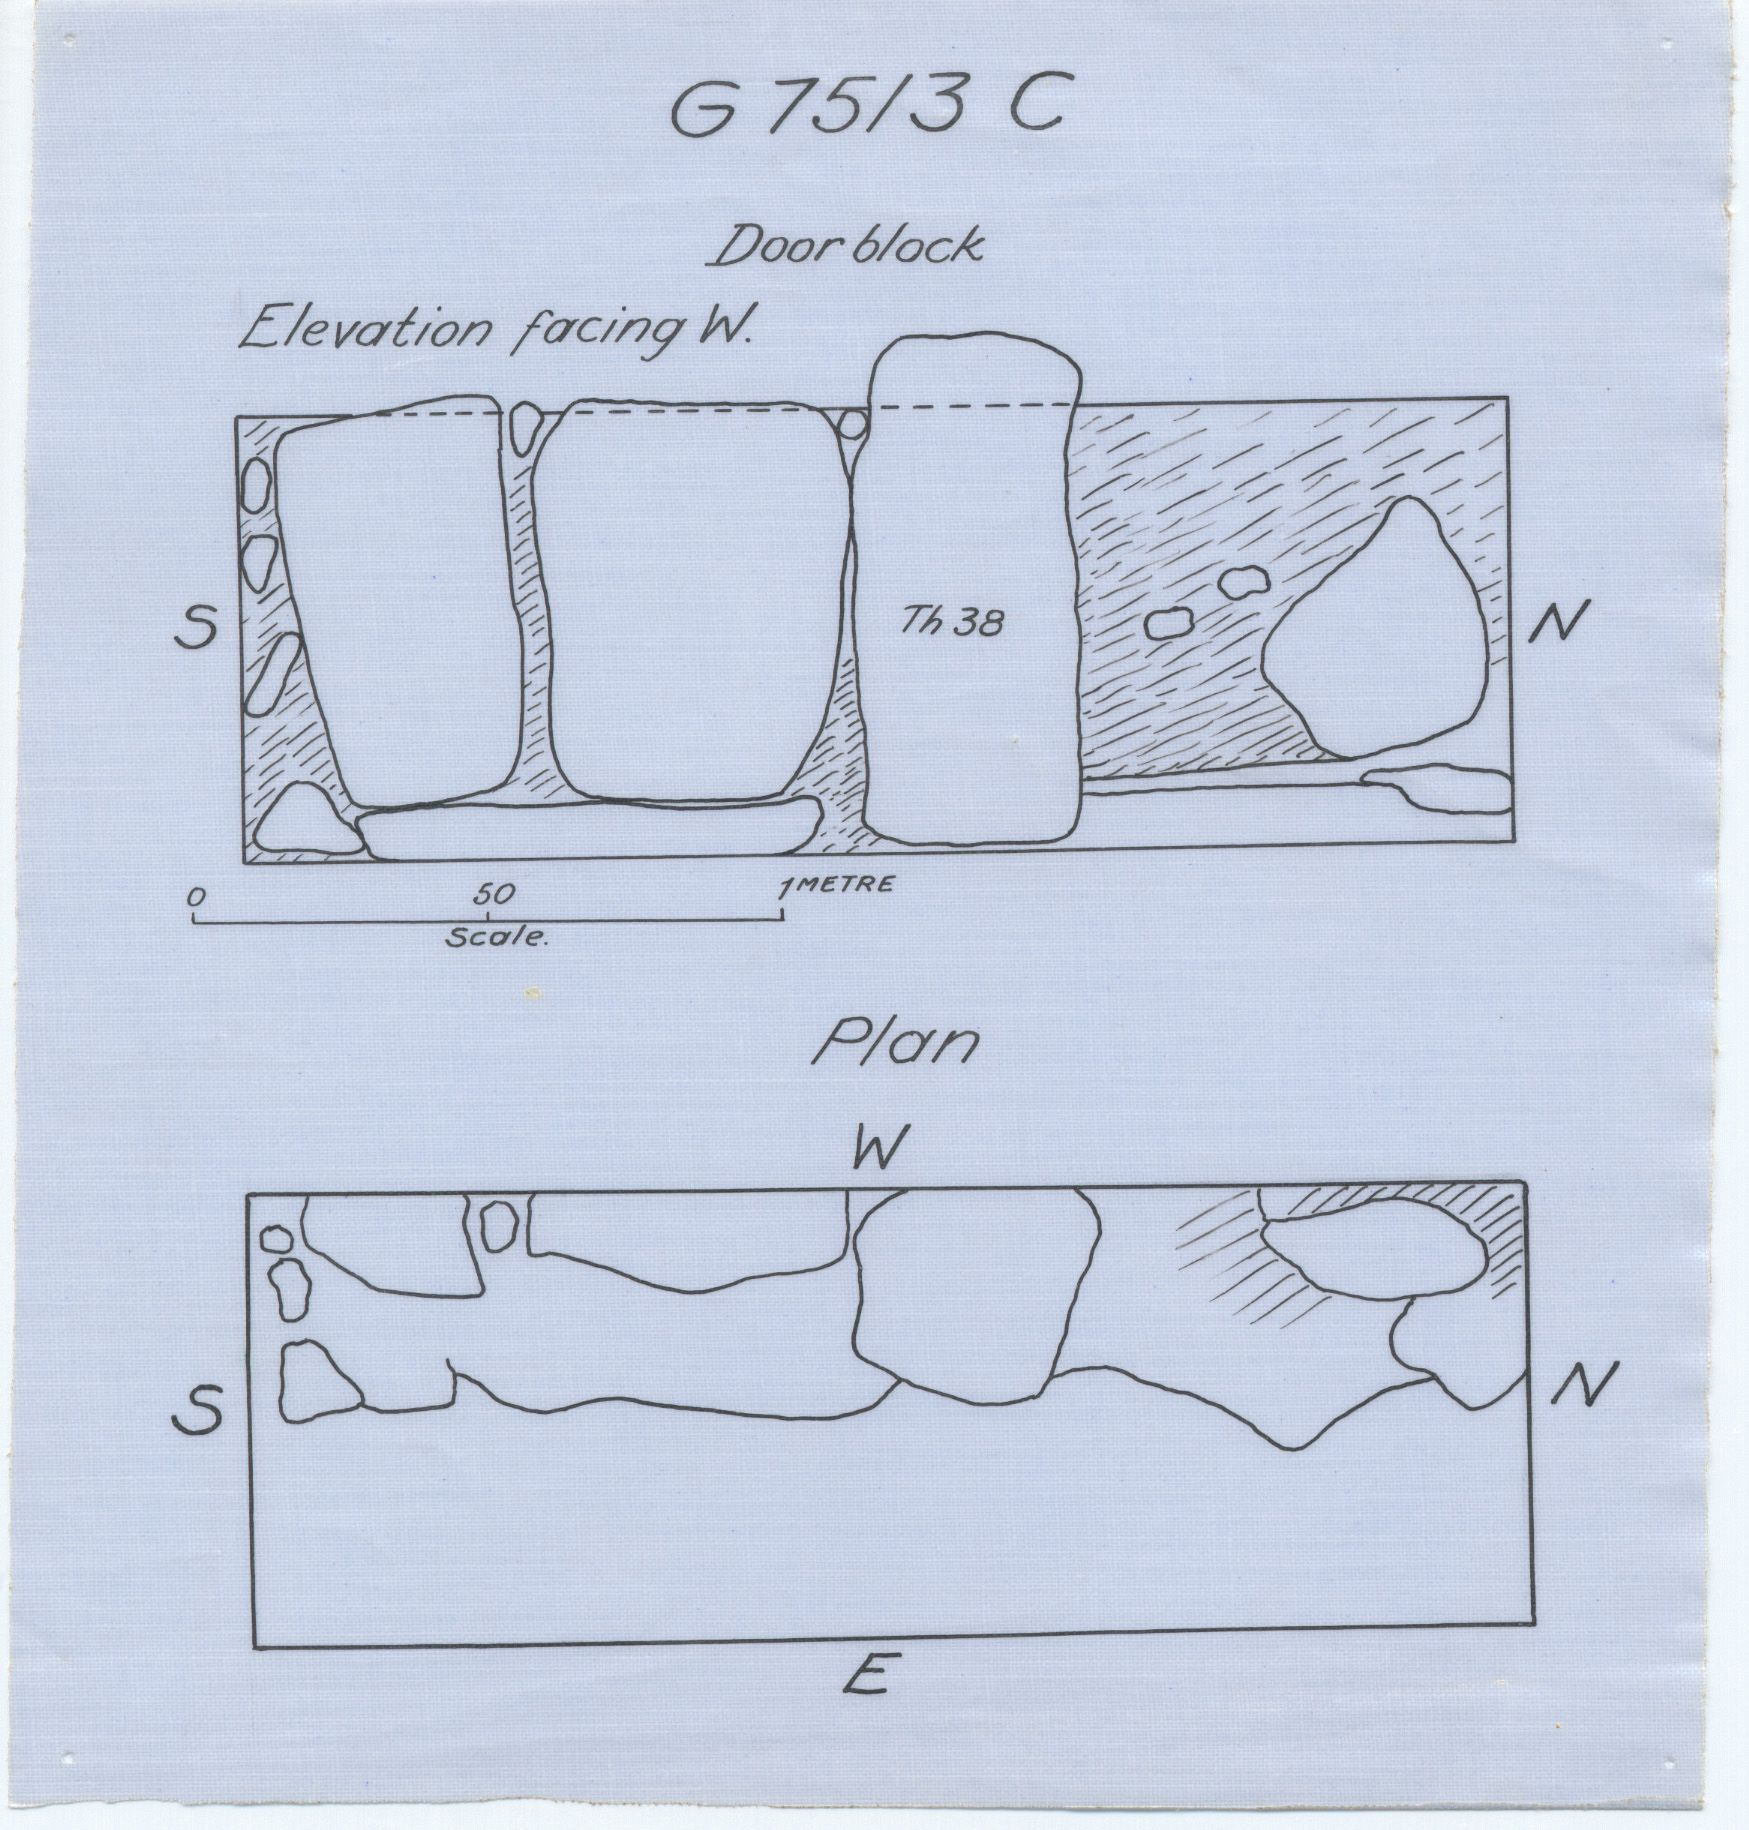 Maps and plans: G 7513, Shaft C